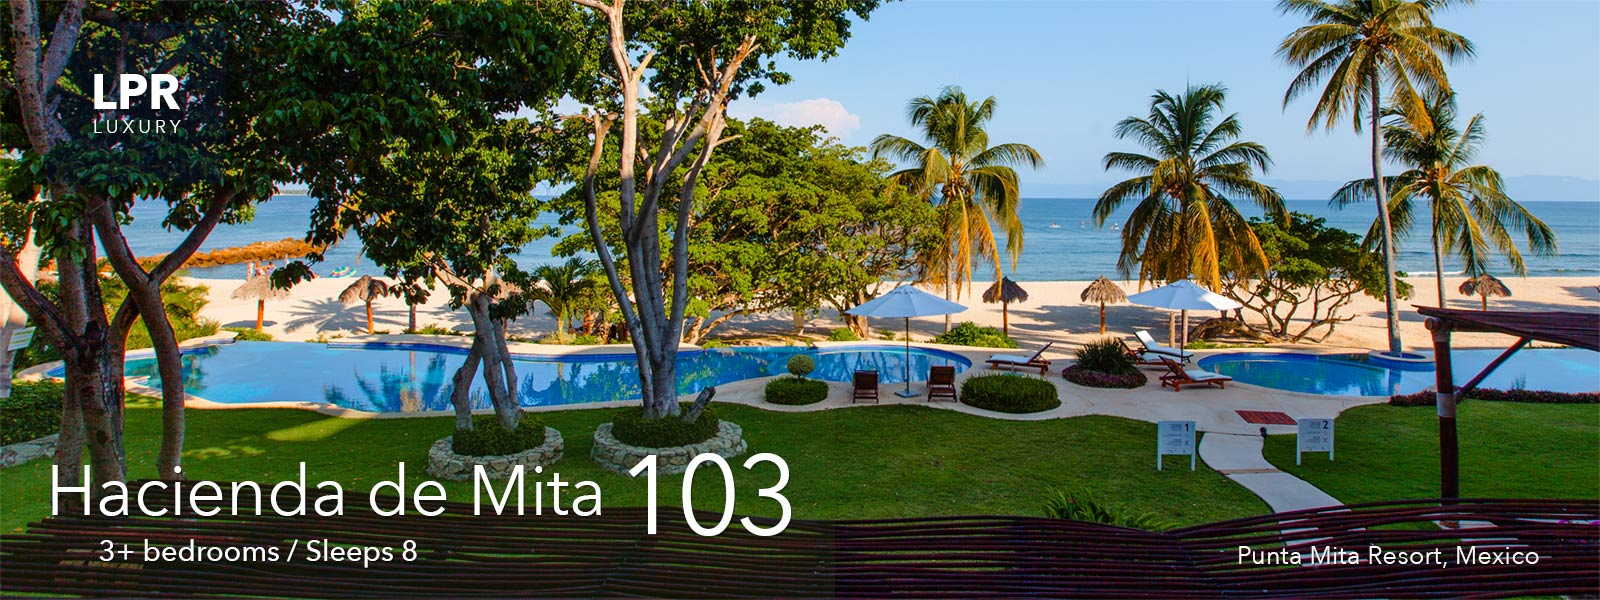 Hacienda de Mita 103 - Luxury Punta Mita Mexico condos for sale and rent